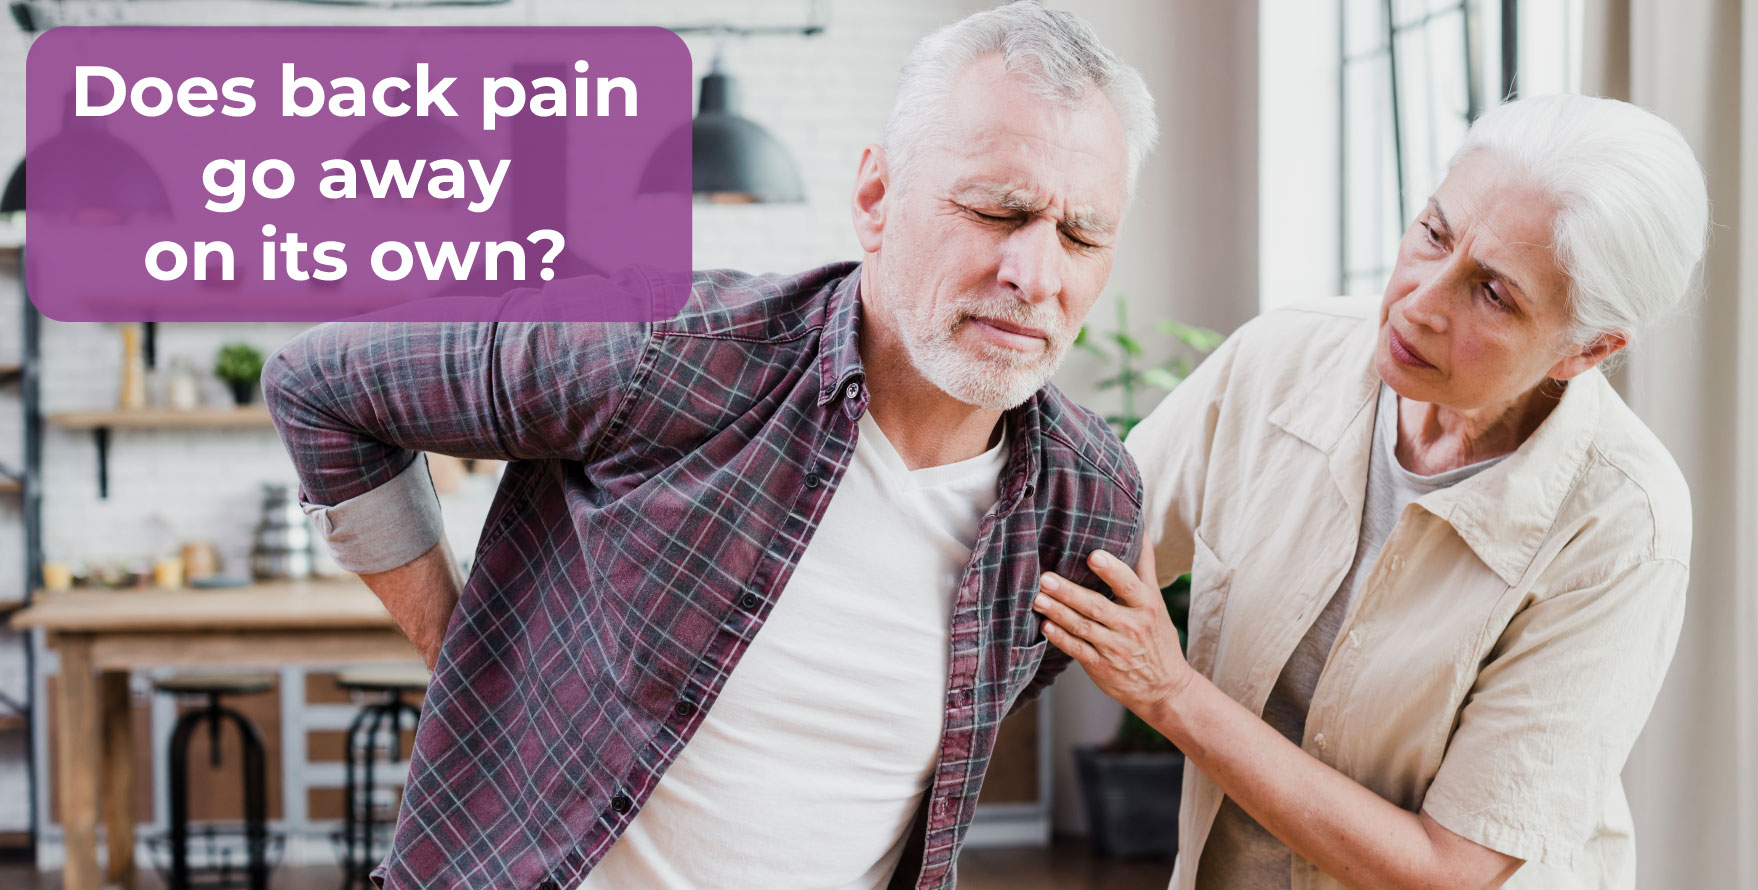 Does-Back-Pain-go-away-on-its-own-wny-western-newyork-new-york-physical-occupational-therapy-therapist-near-me-depew-salamanca-ellicottville-chaffee-book-appointment-free-evaluation